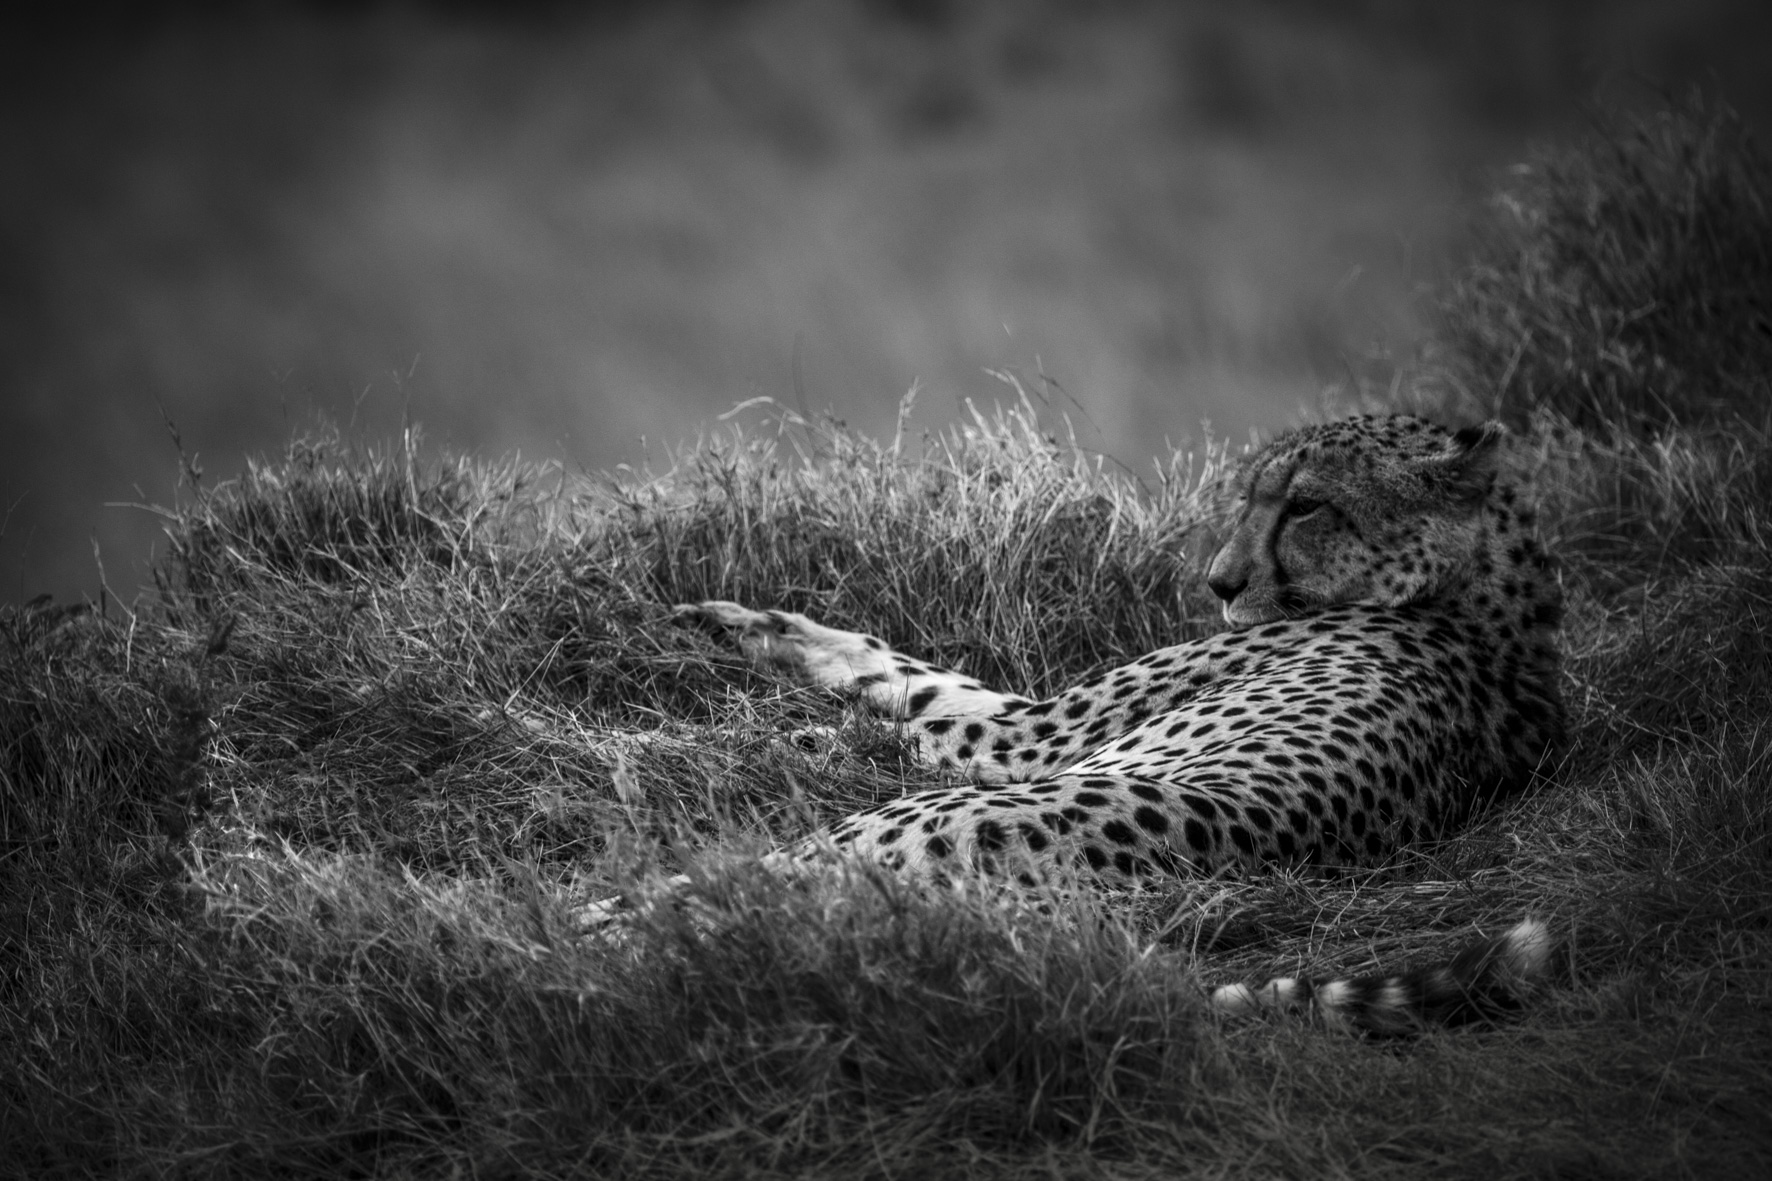 David Crookes-Cheetah